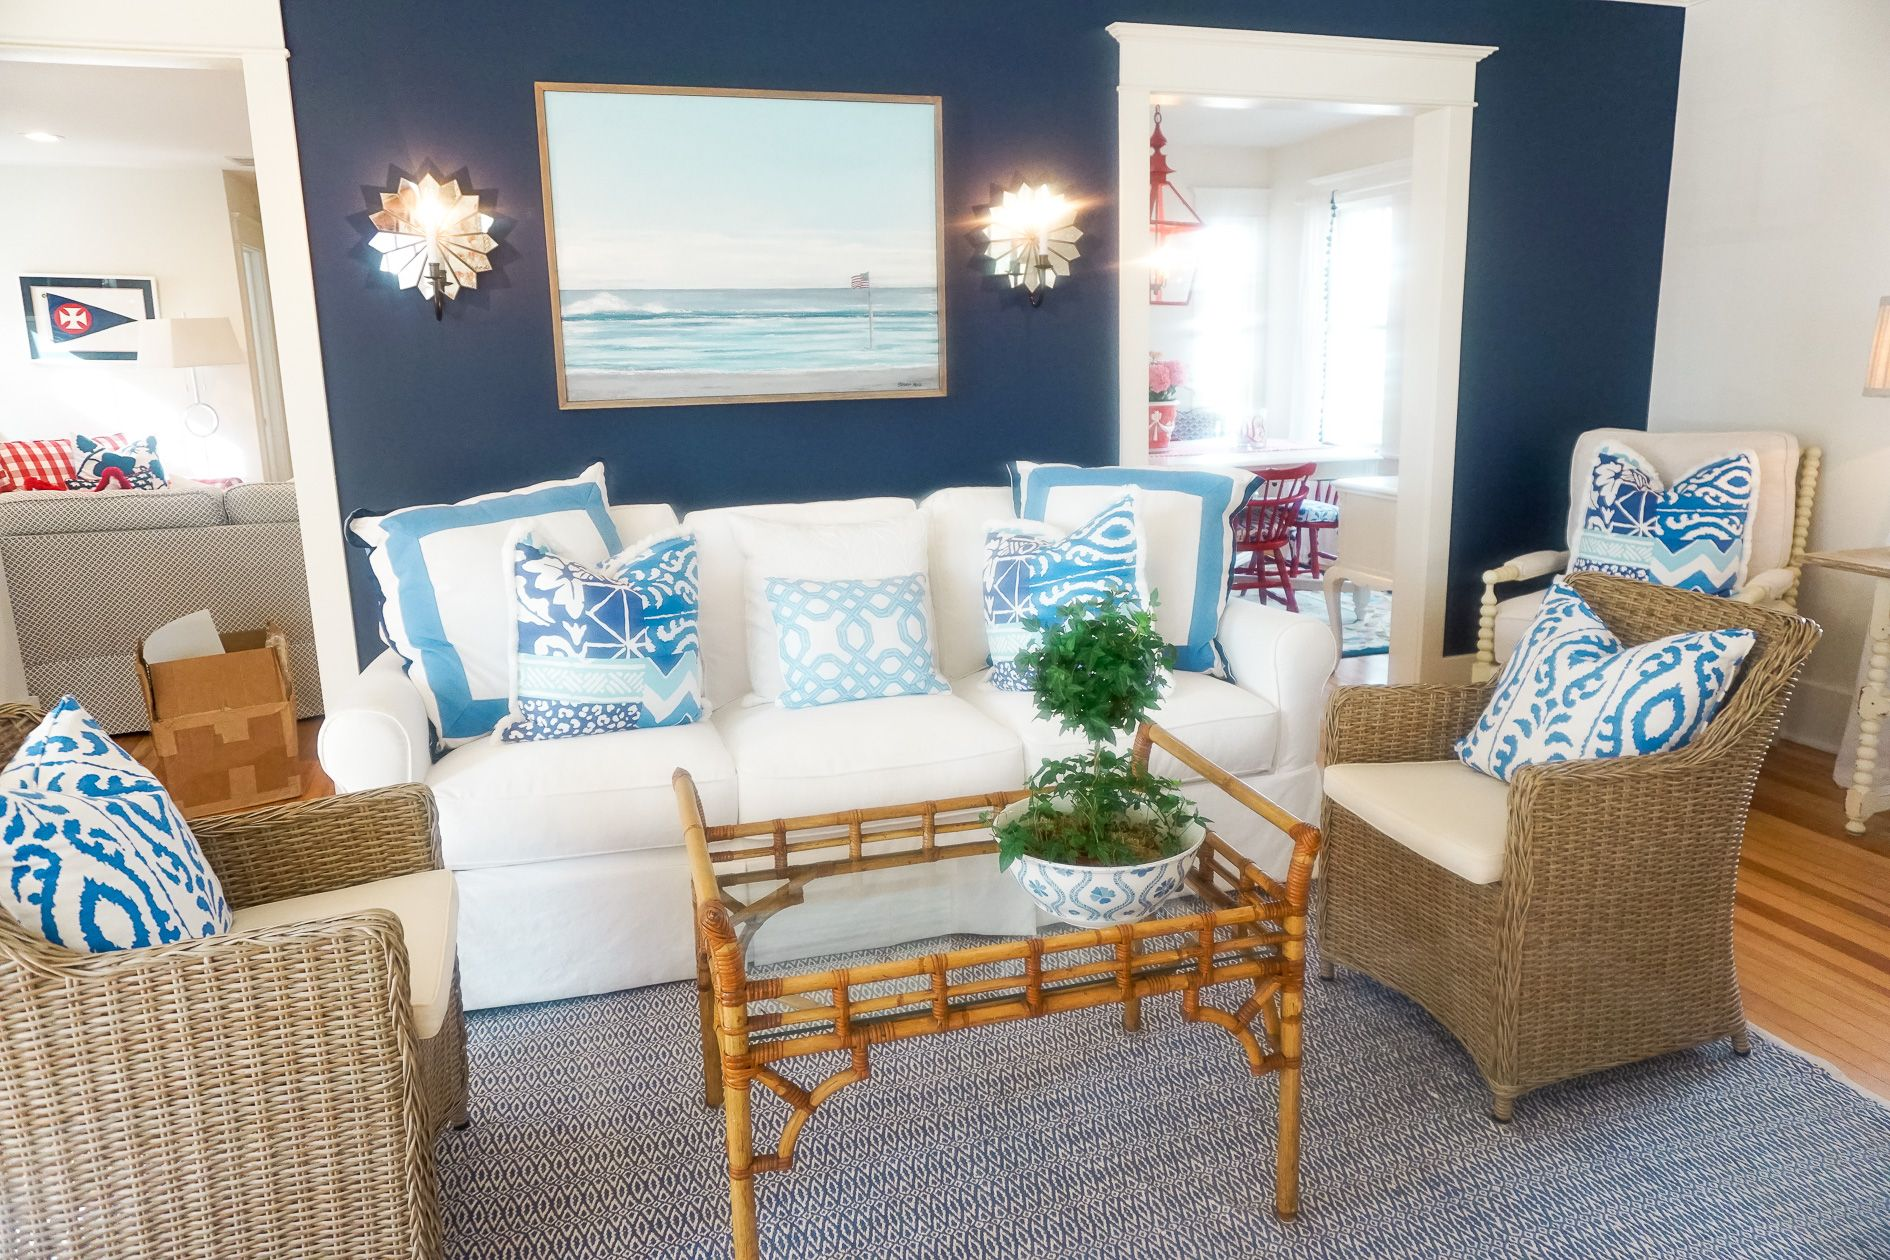 Coastal Living Beach House Red White And Blue Decorations In Family Room On Long Island Www Amybelievesinpink